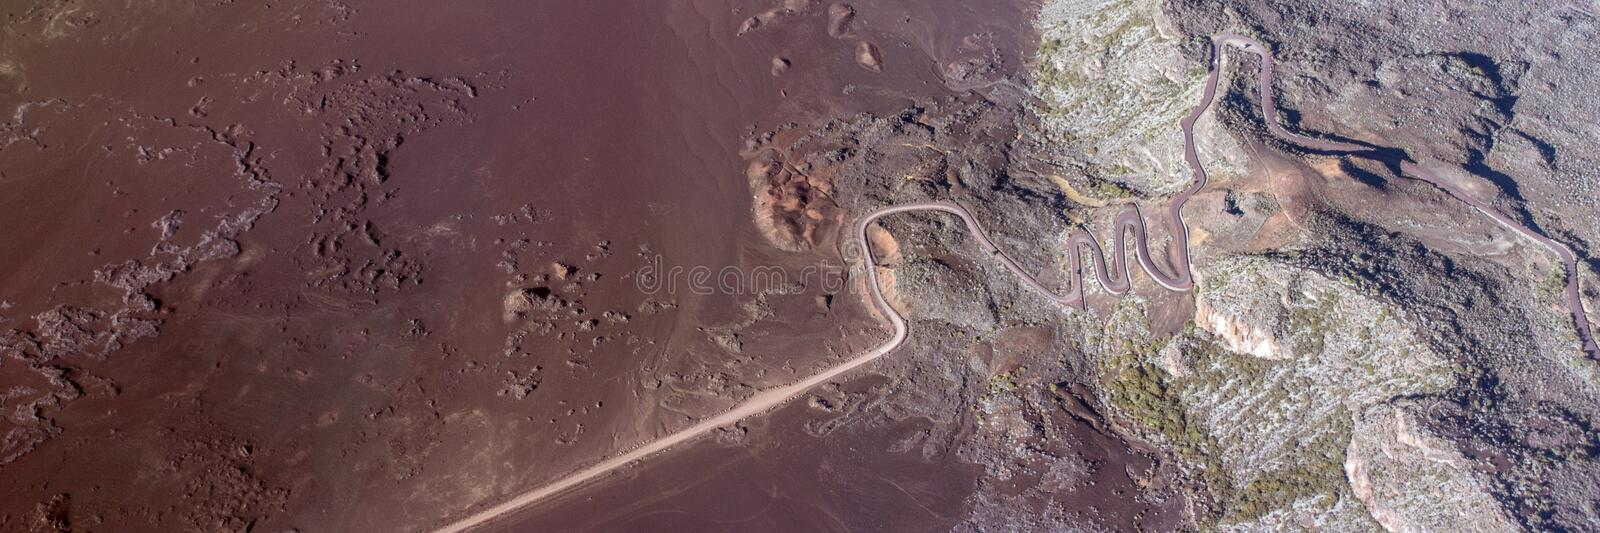 Aerial photo of Road in volcanic landscape of Plaine des Sables, Reunion Island stock photos